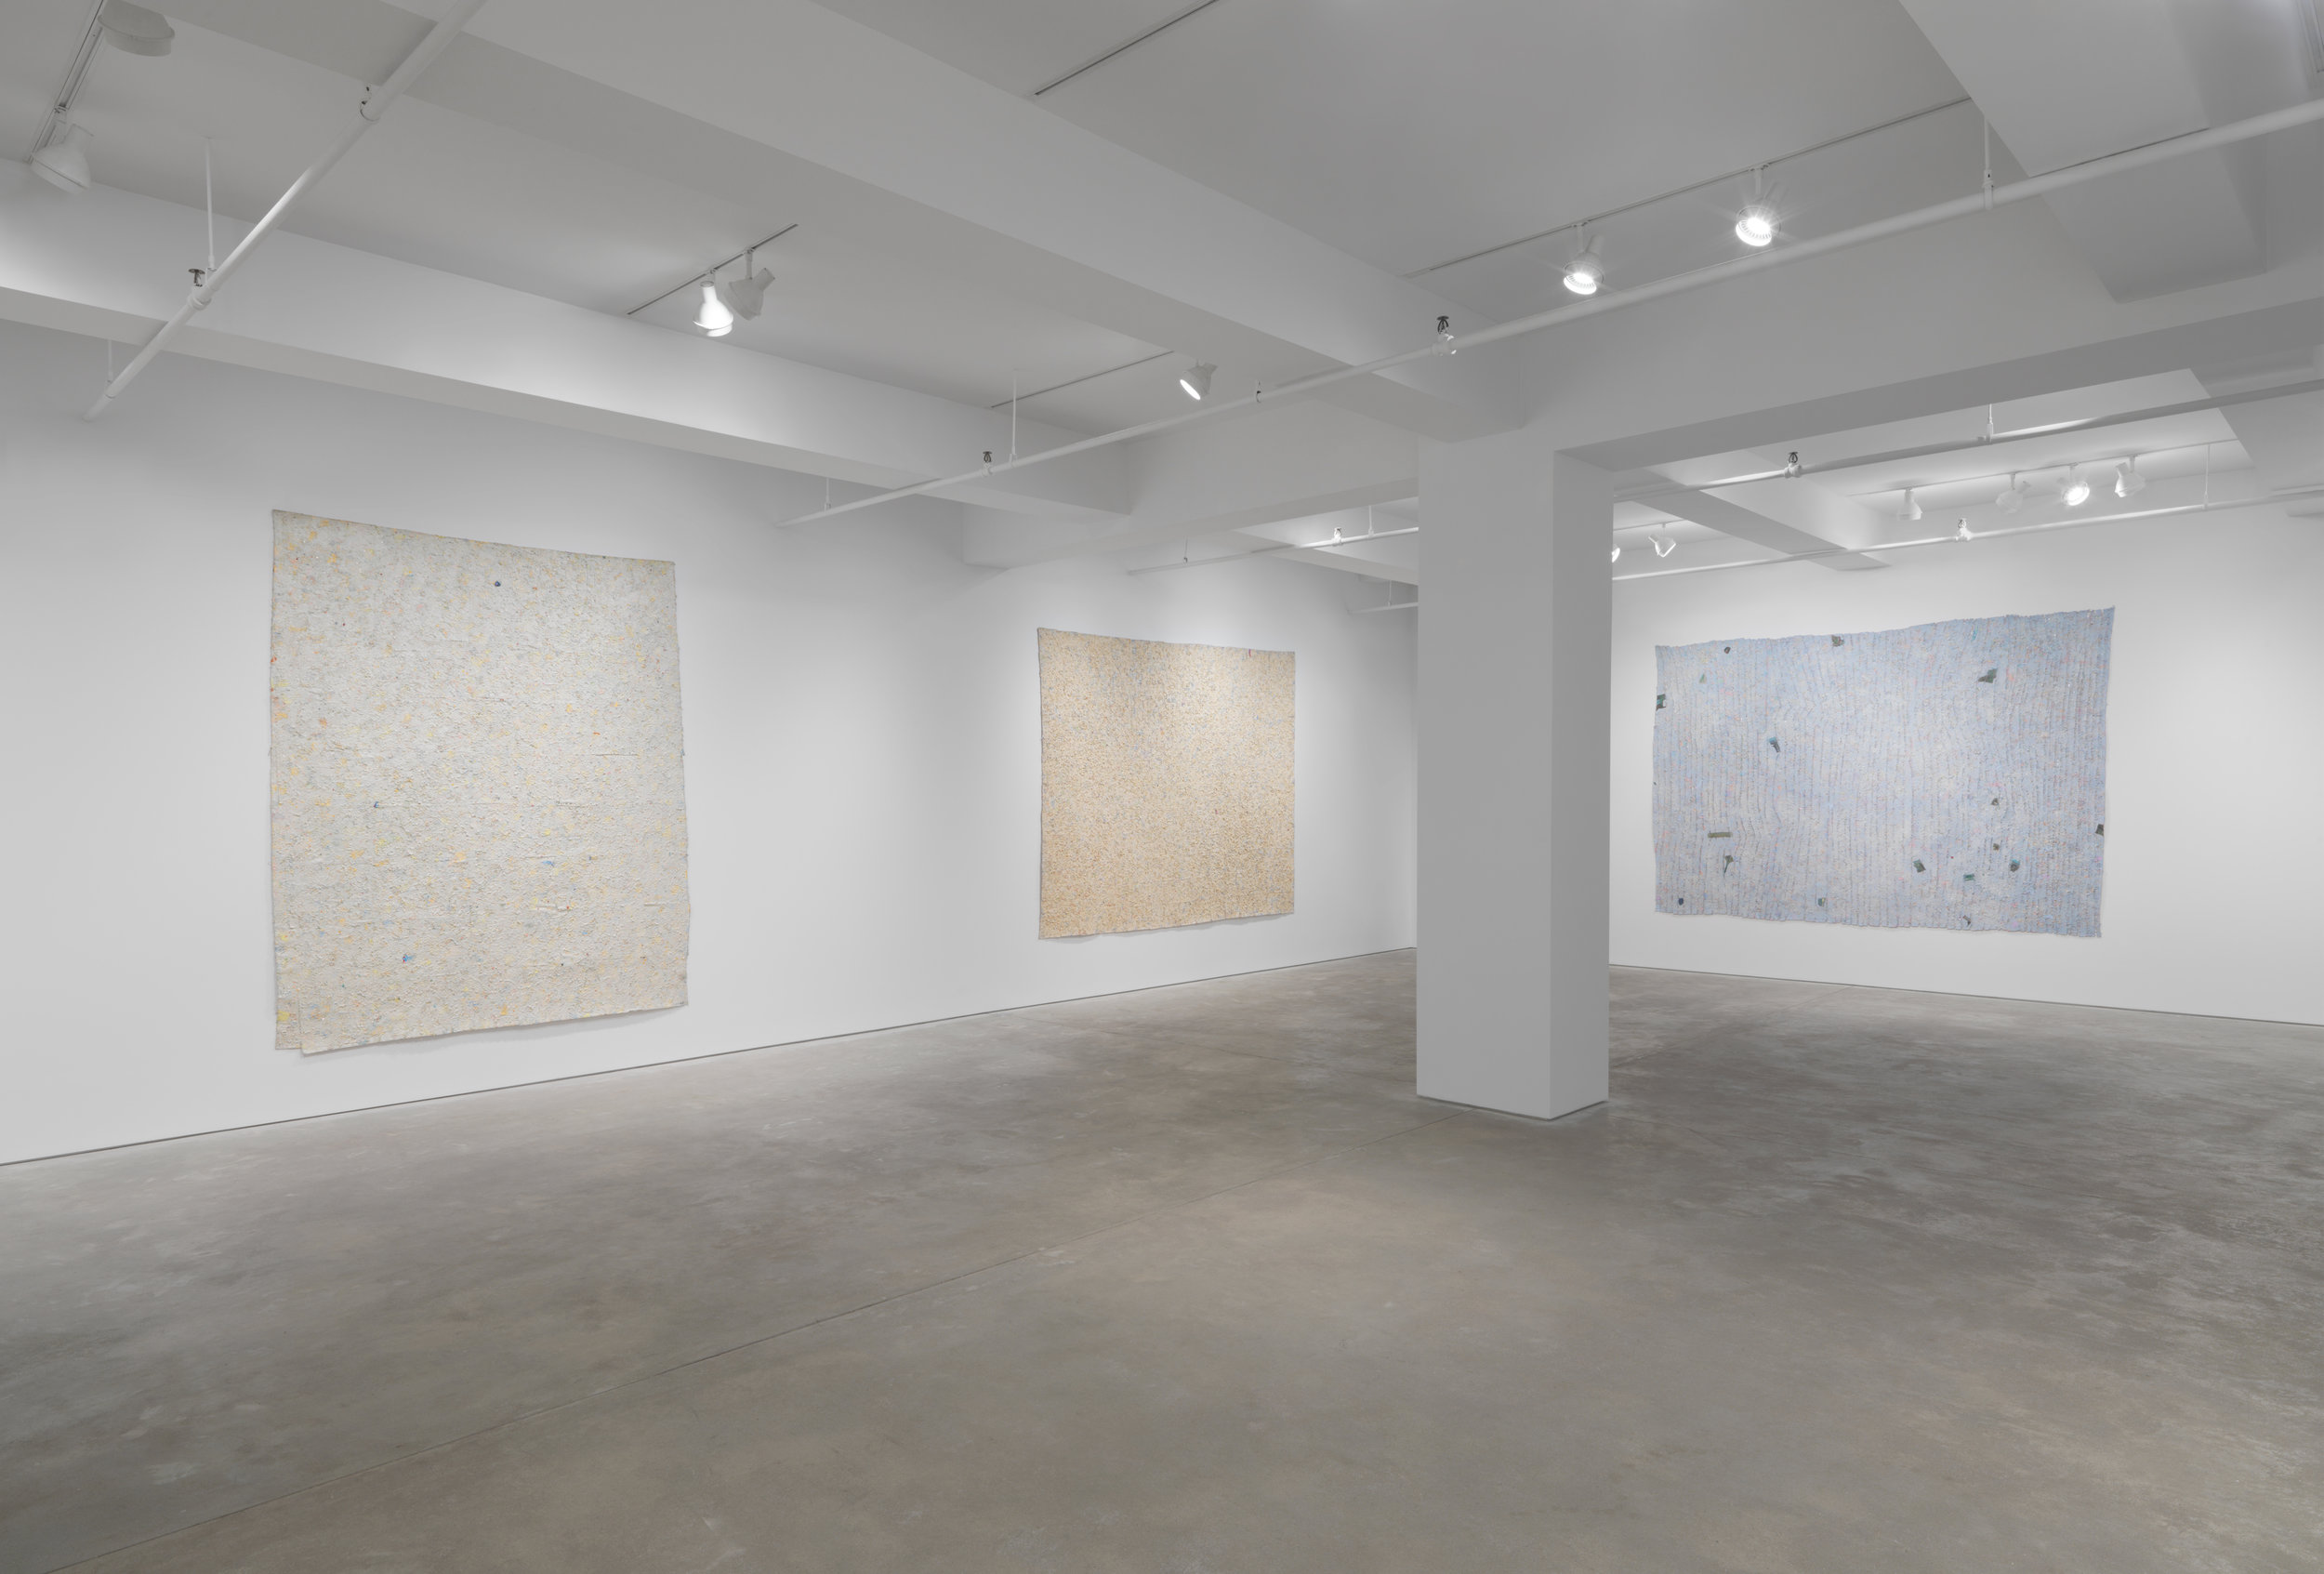 Howardena Pindell: Paintings, 1974–1980 - Garth Greenan Gallery, New York | April 10 – May 17, 2014